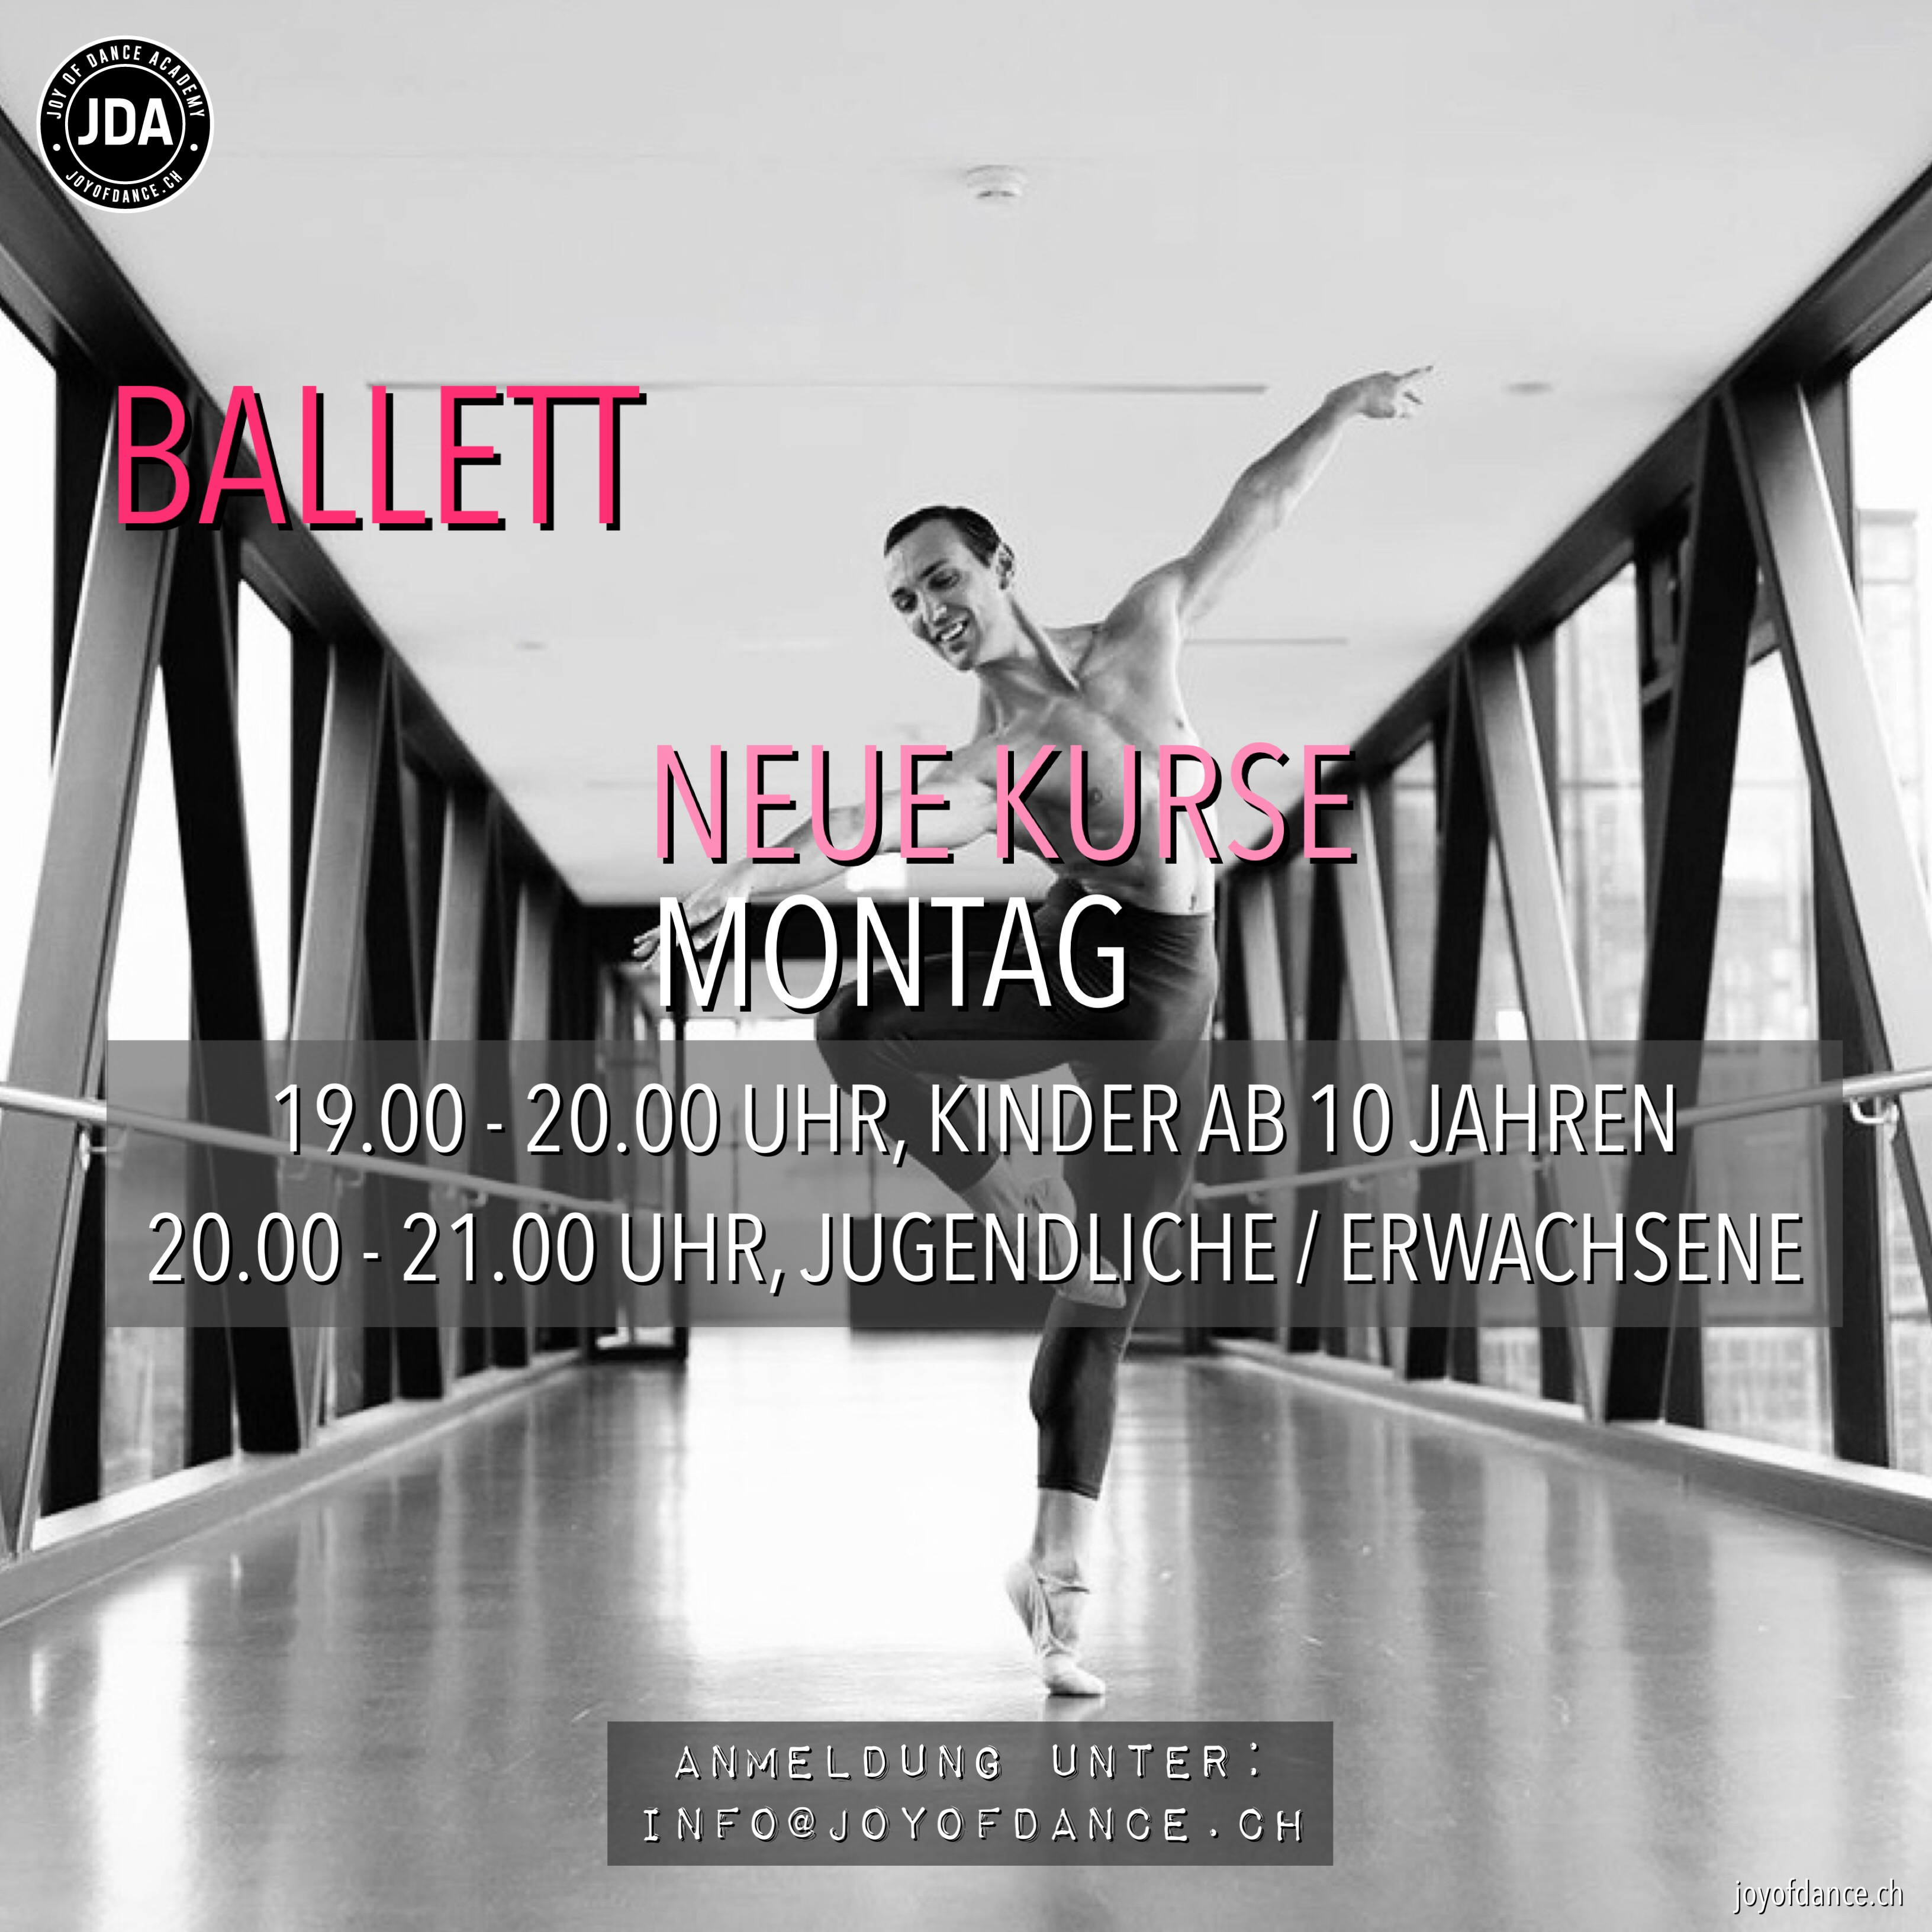 Banner Ballett new classes JDA joyofdance.ch